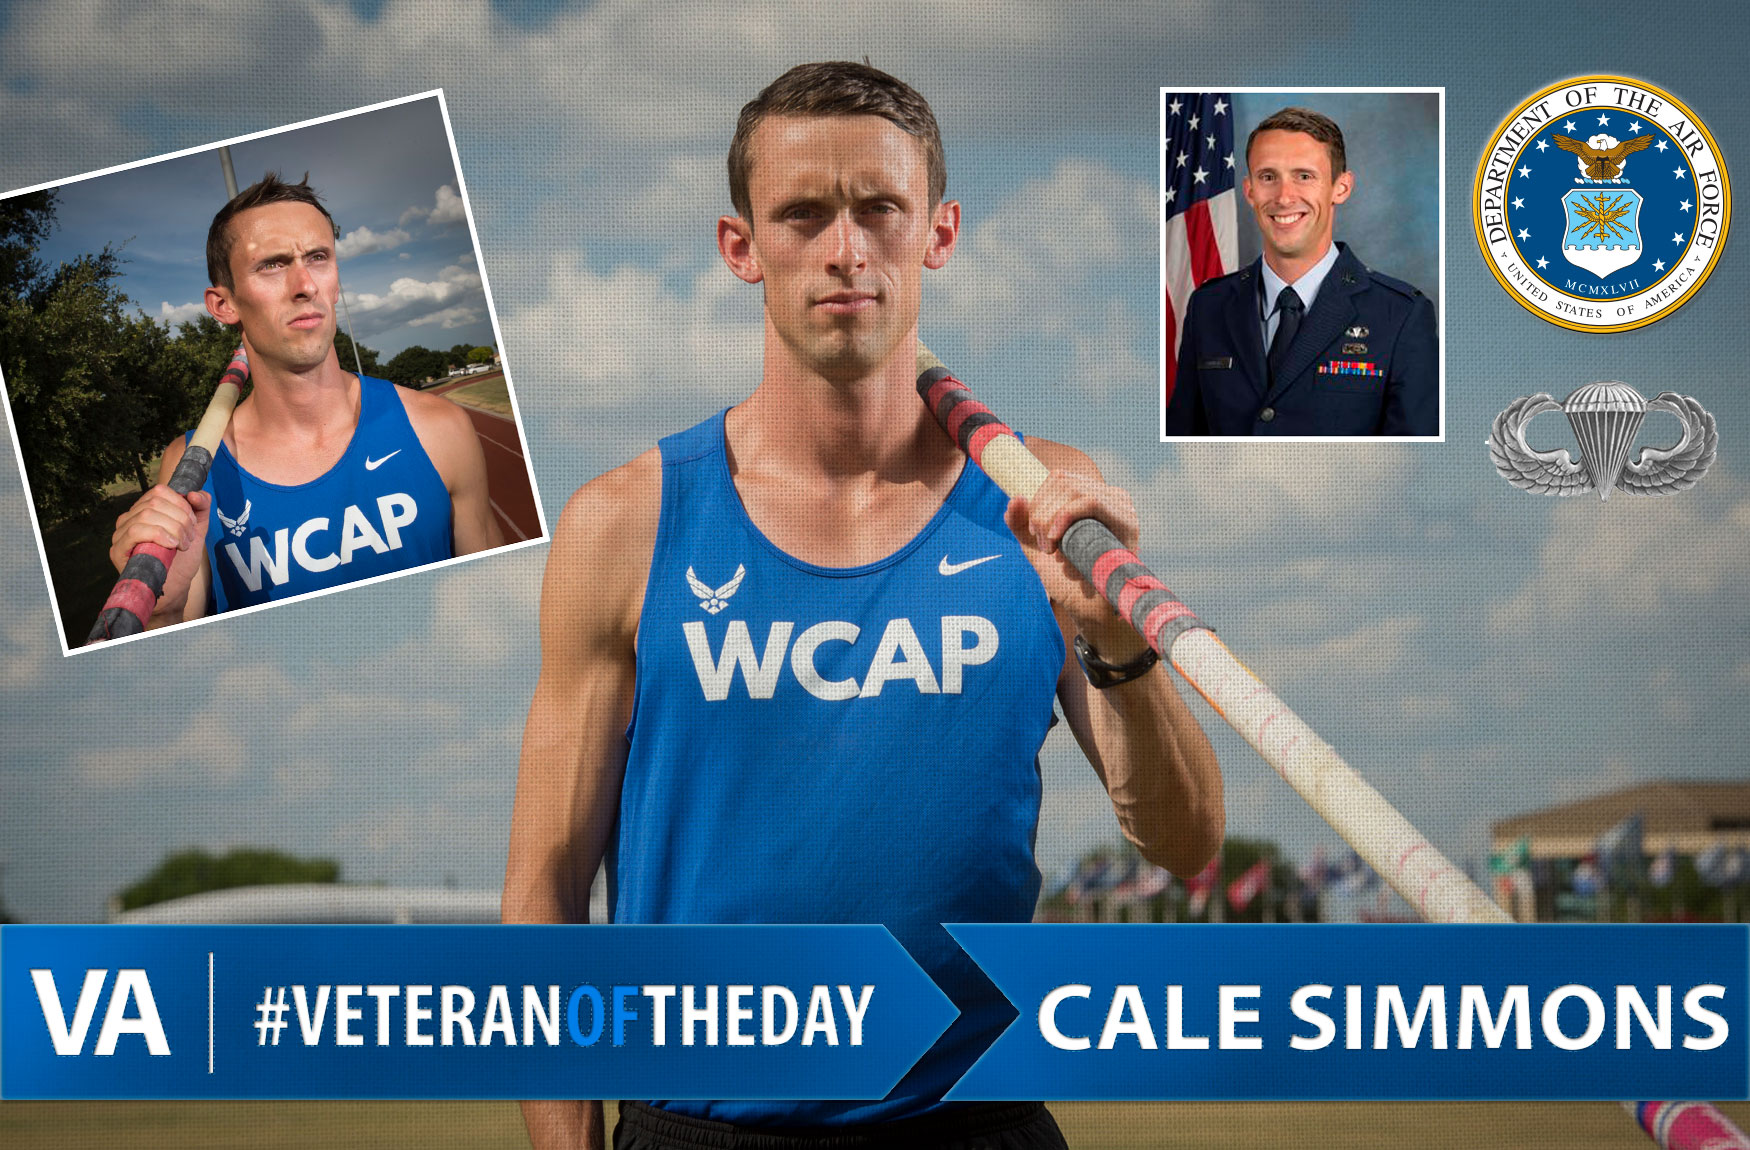 Cale Simmons air force